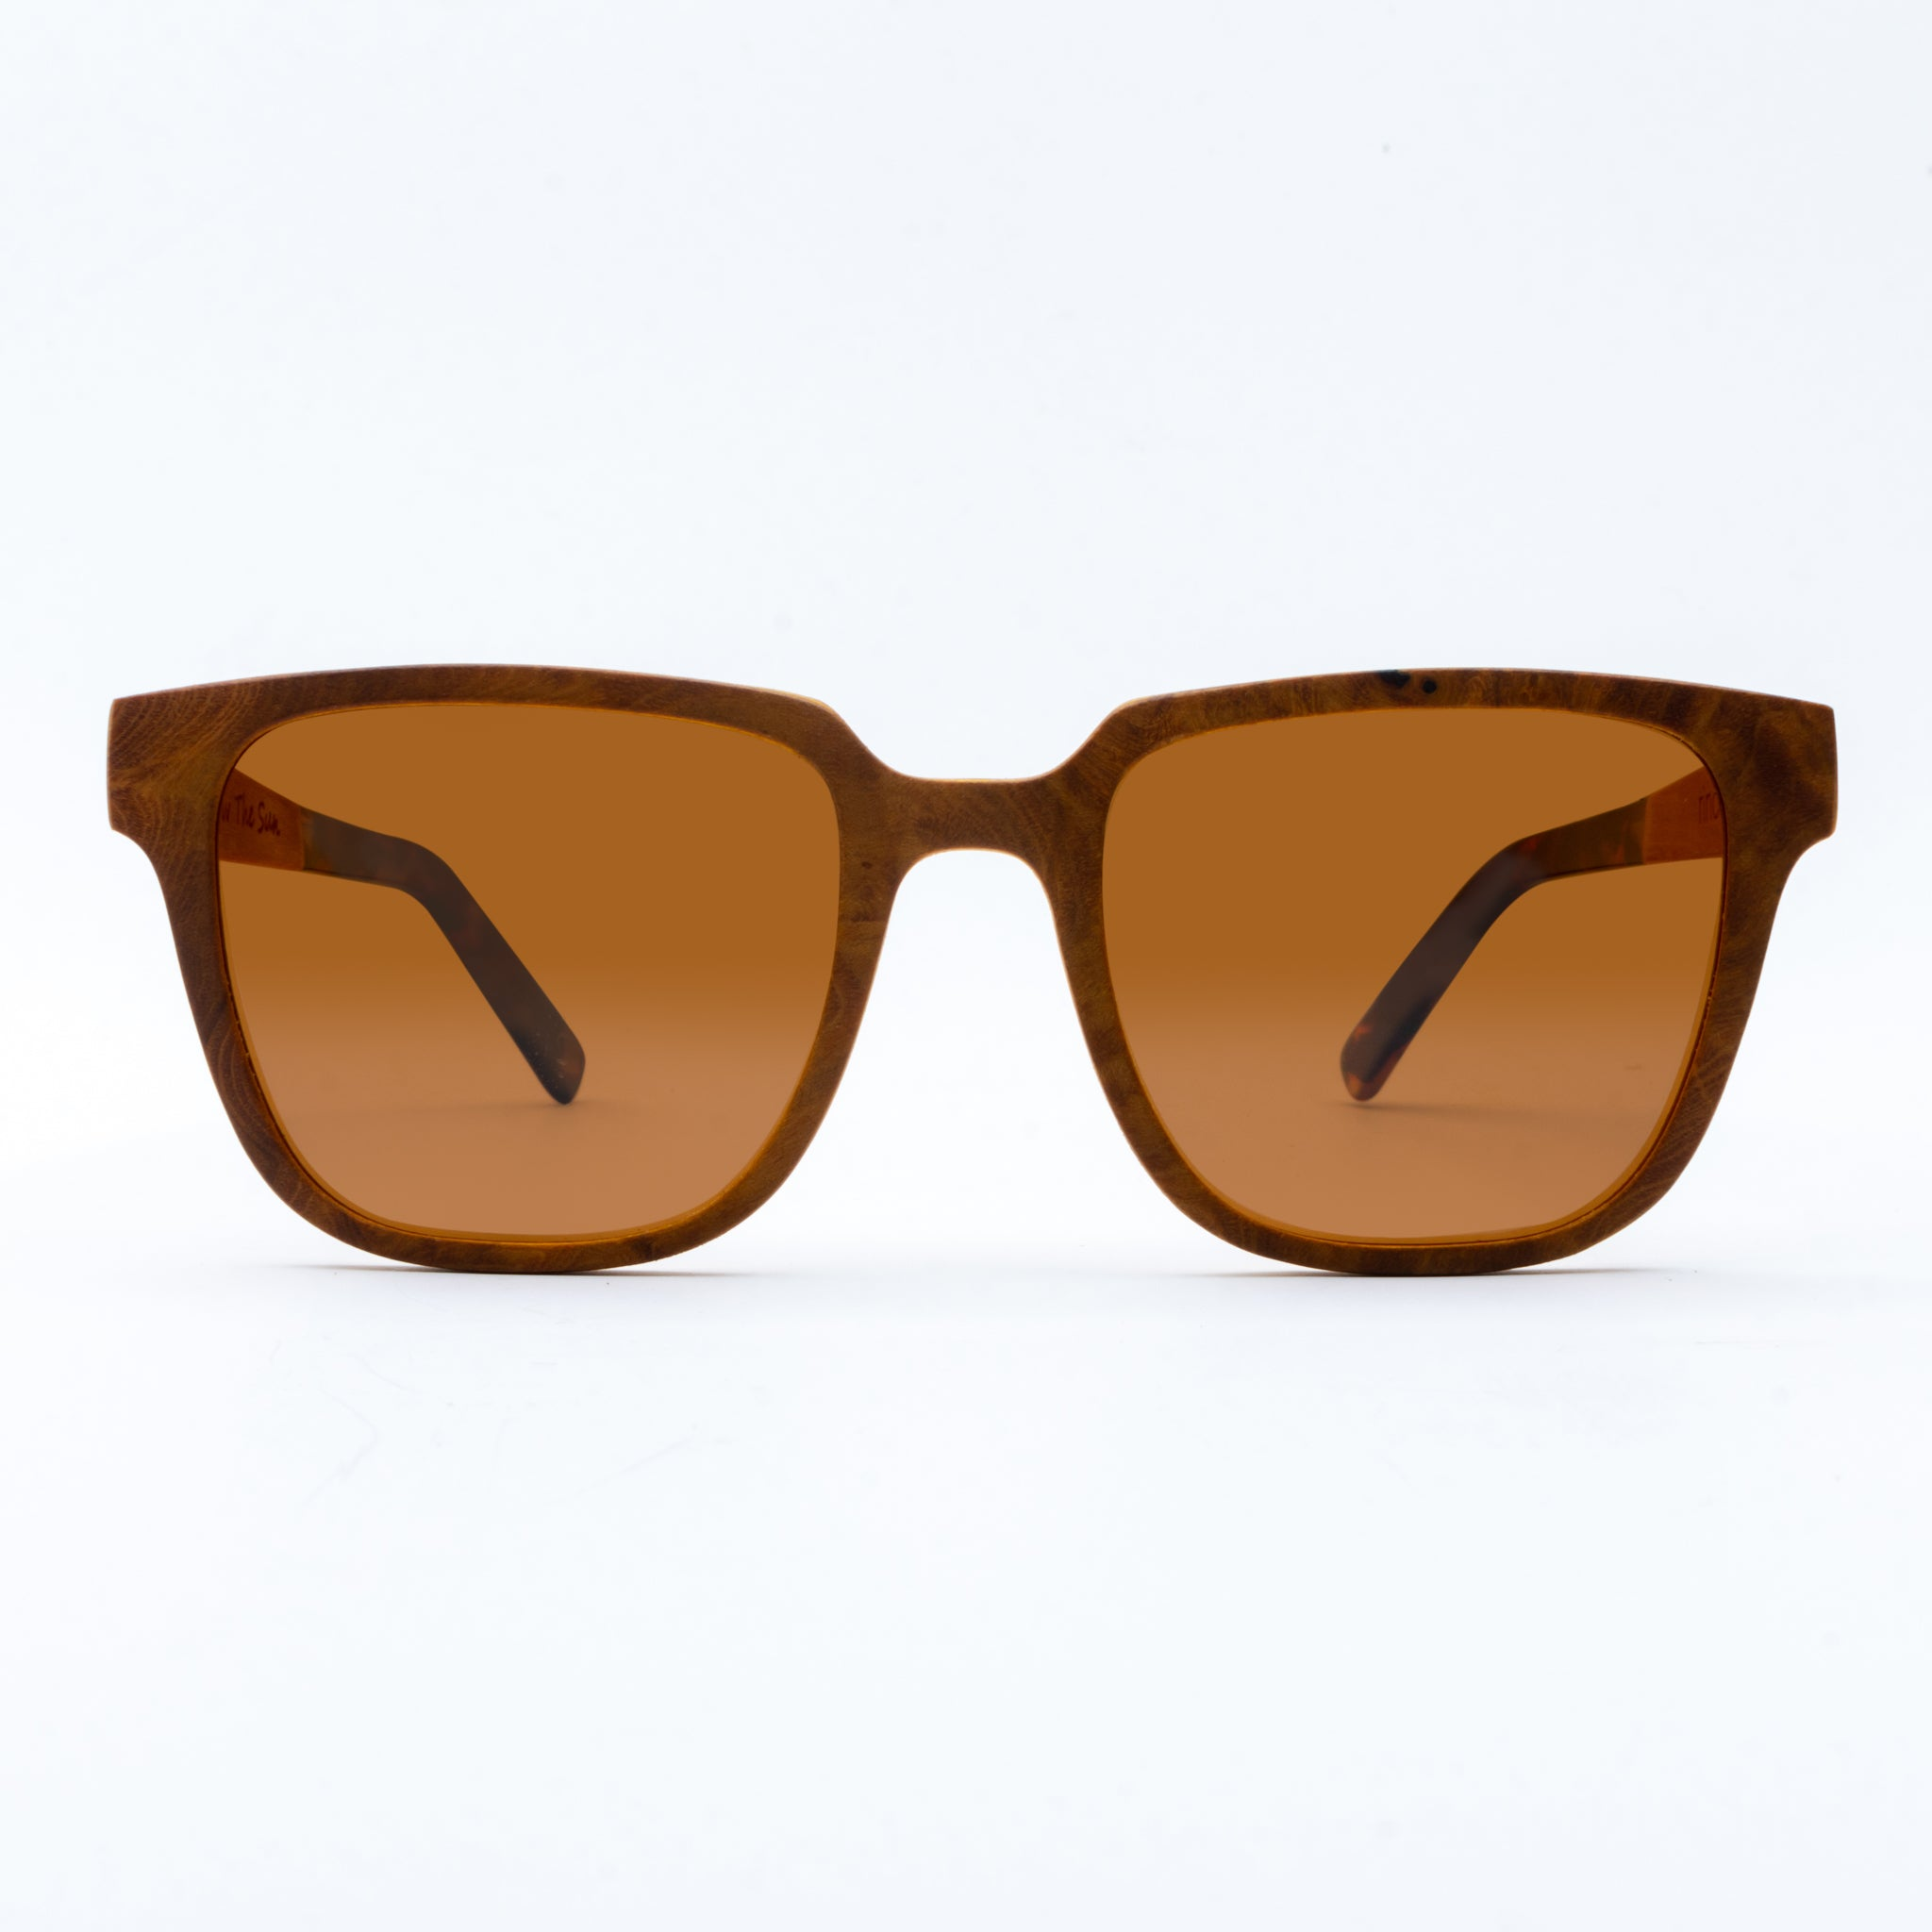 Wooden Sunglasses Rinca Mapplewood Suki